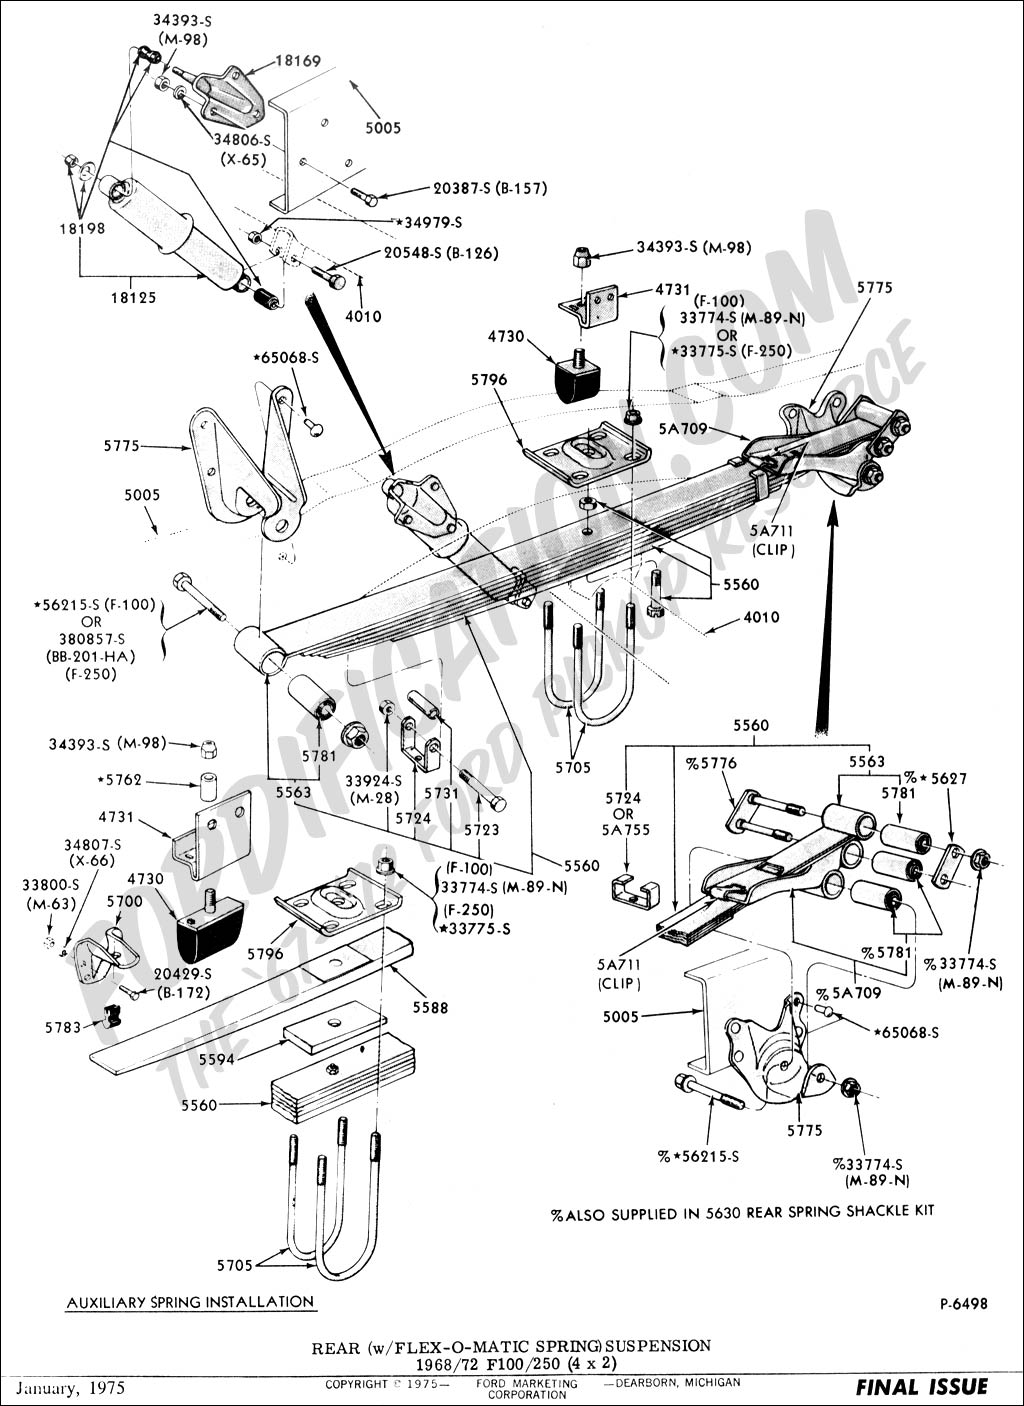 2010 f250 front end parts diagram